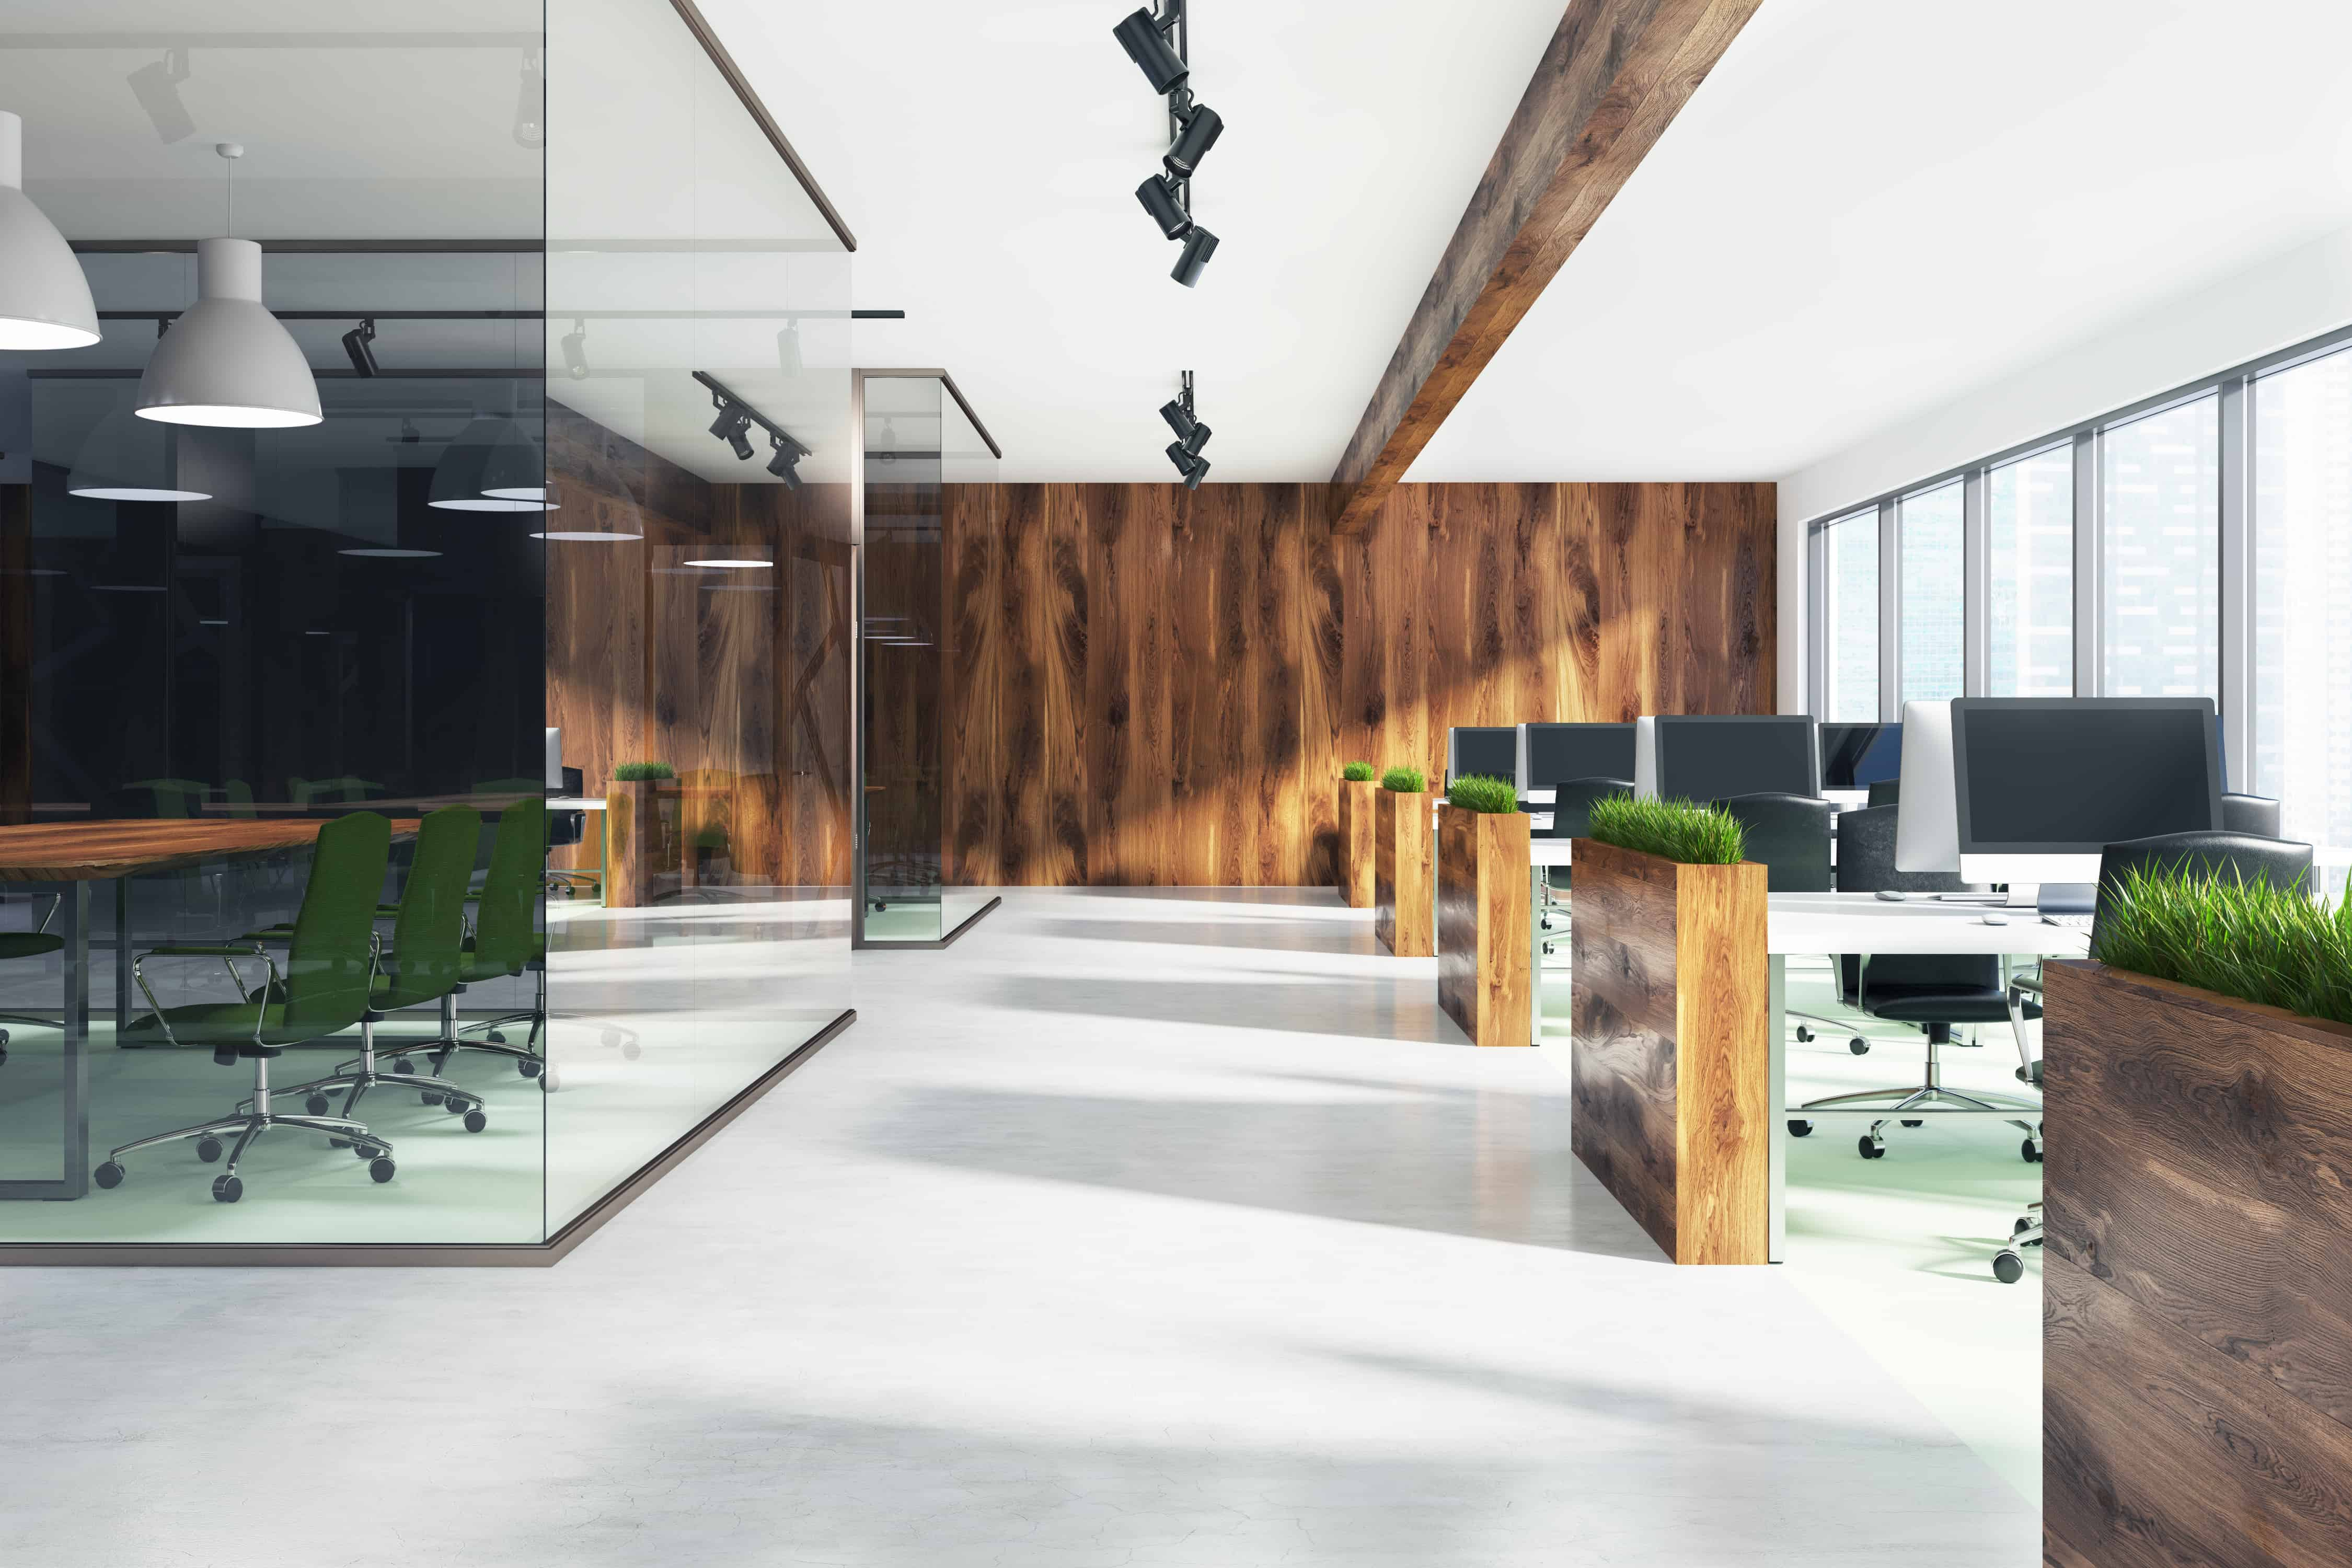 How to Choose an Office Space That Will Encourage Organization and Productivity